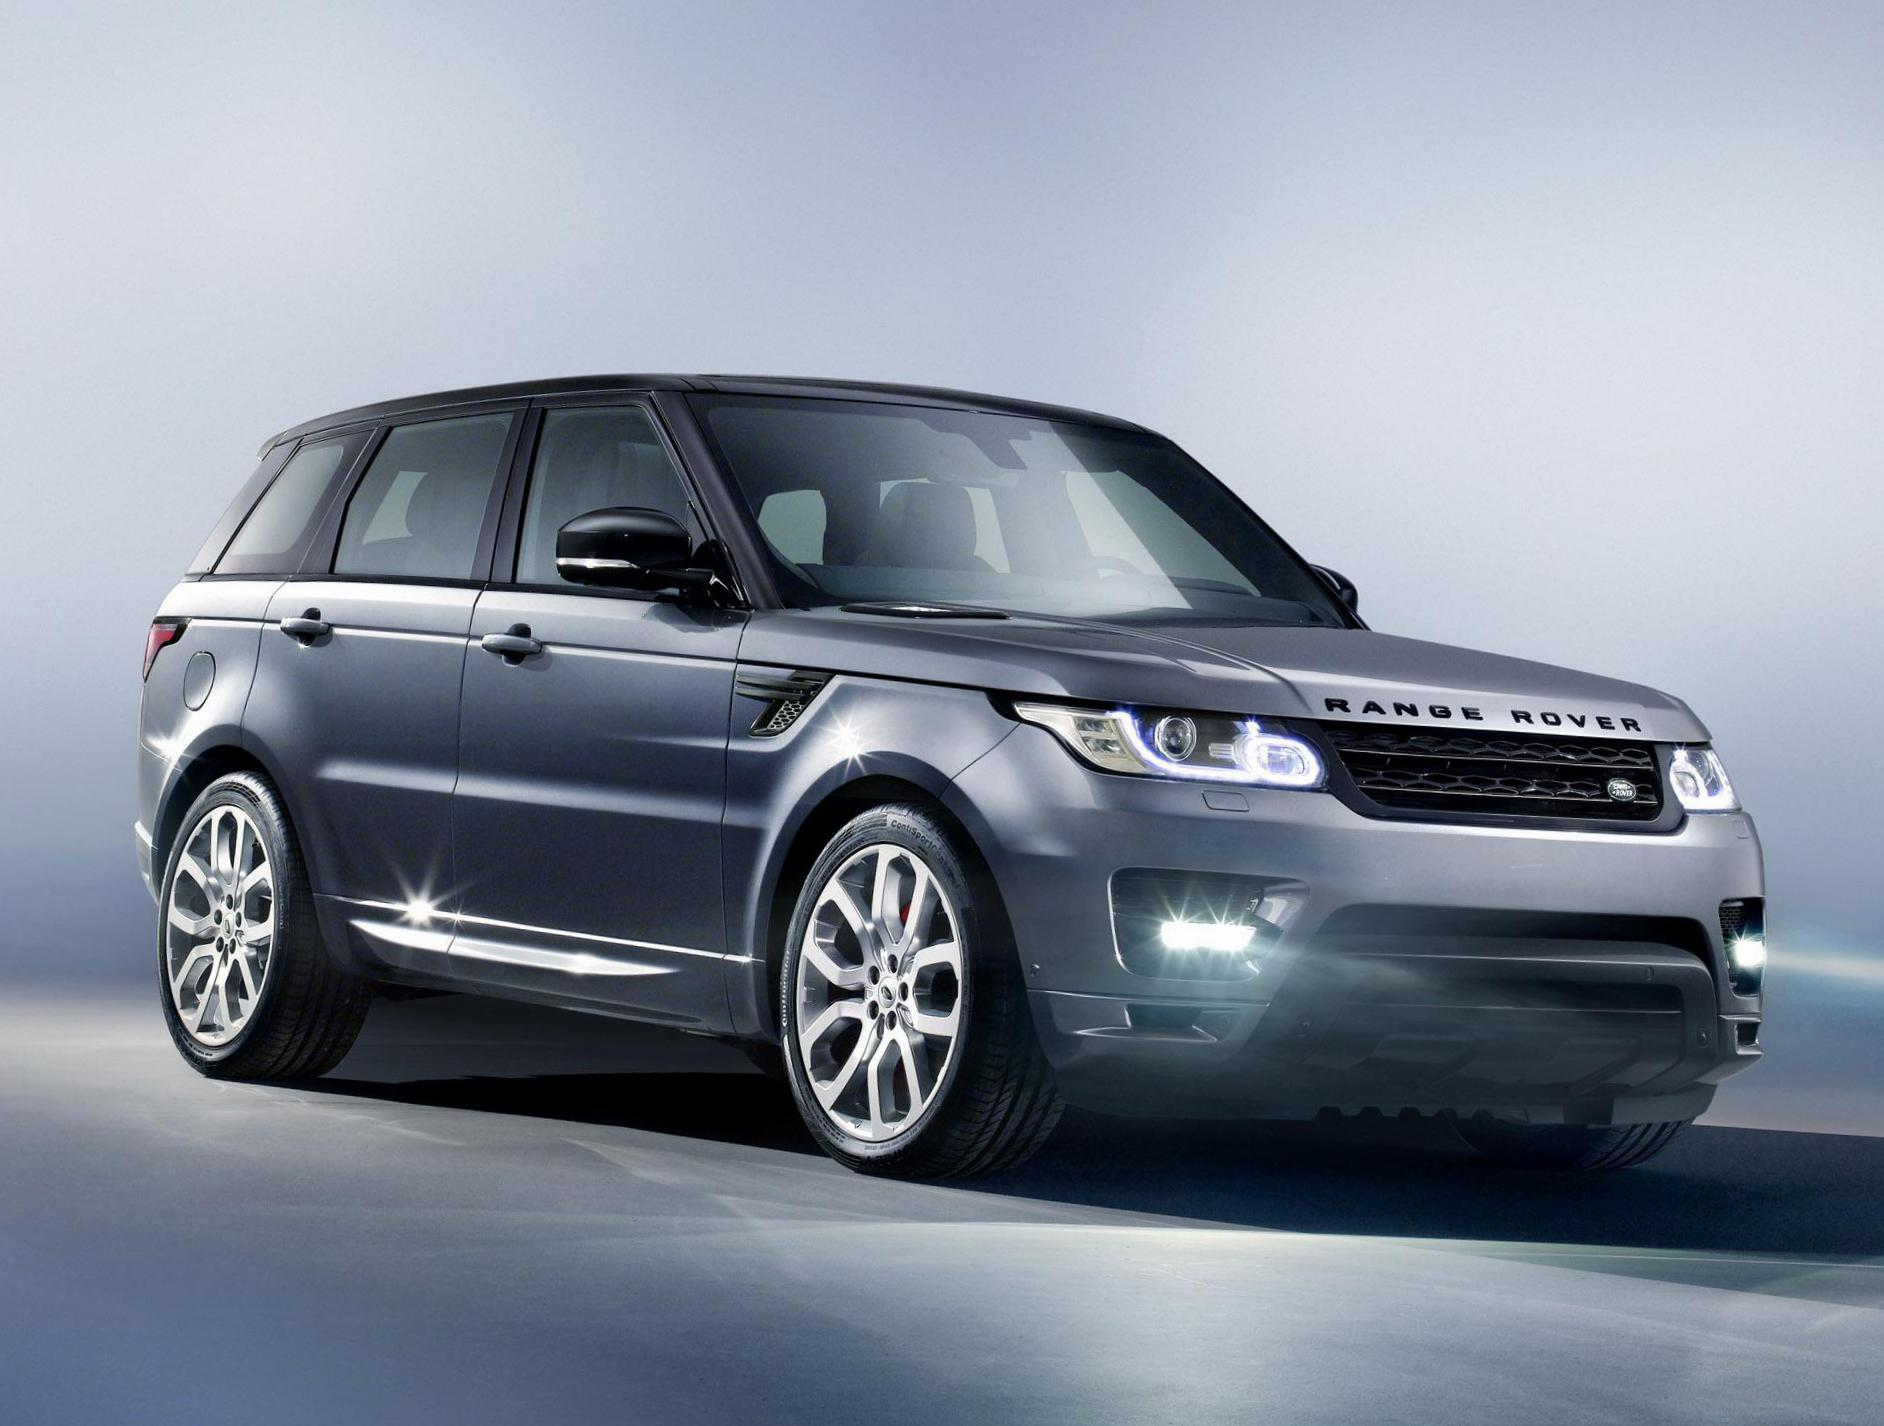 Land Rover Range Rover Sport model 2012